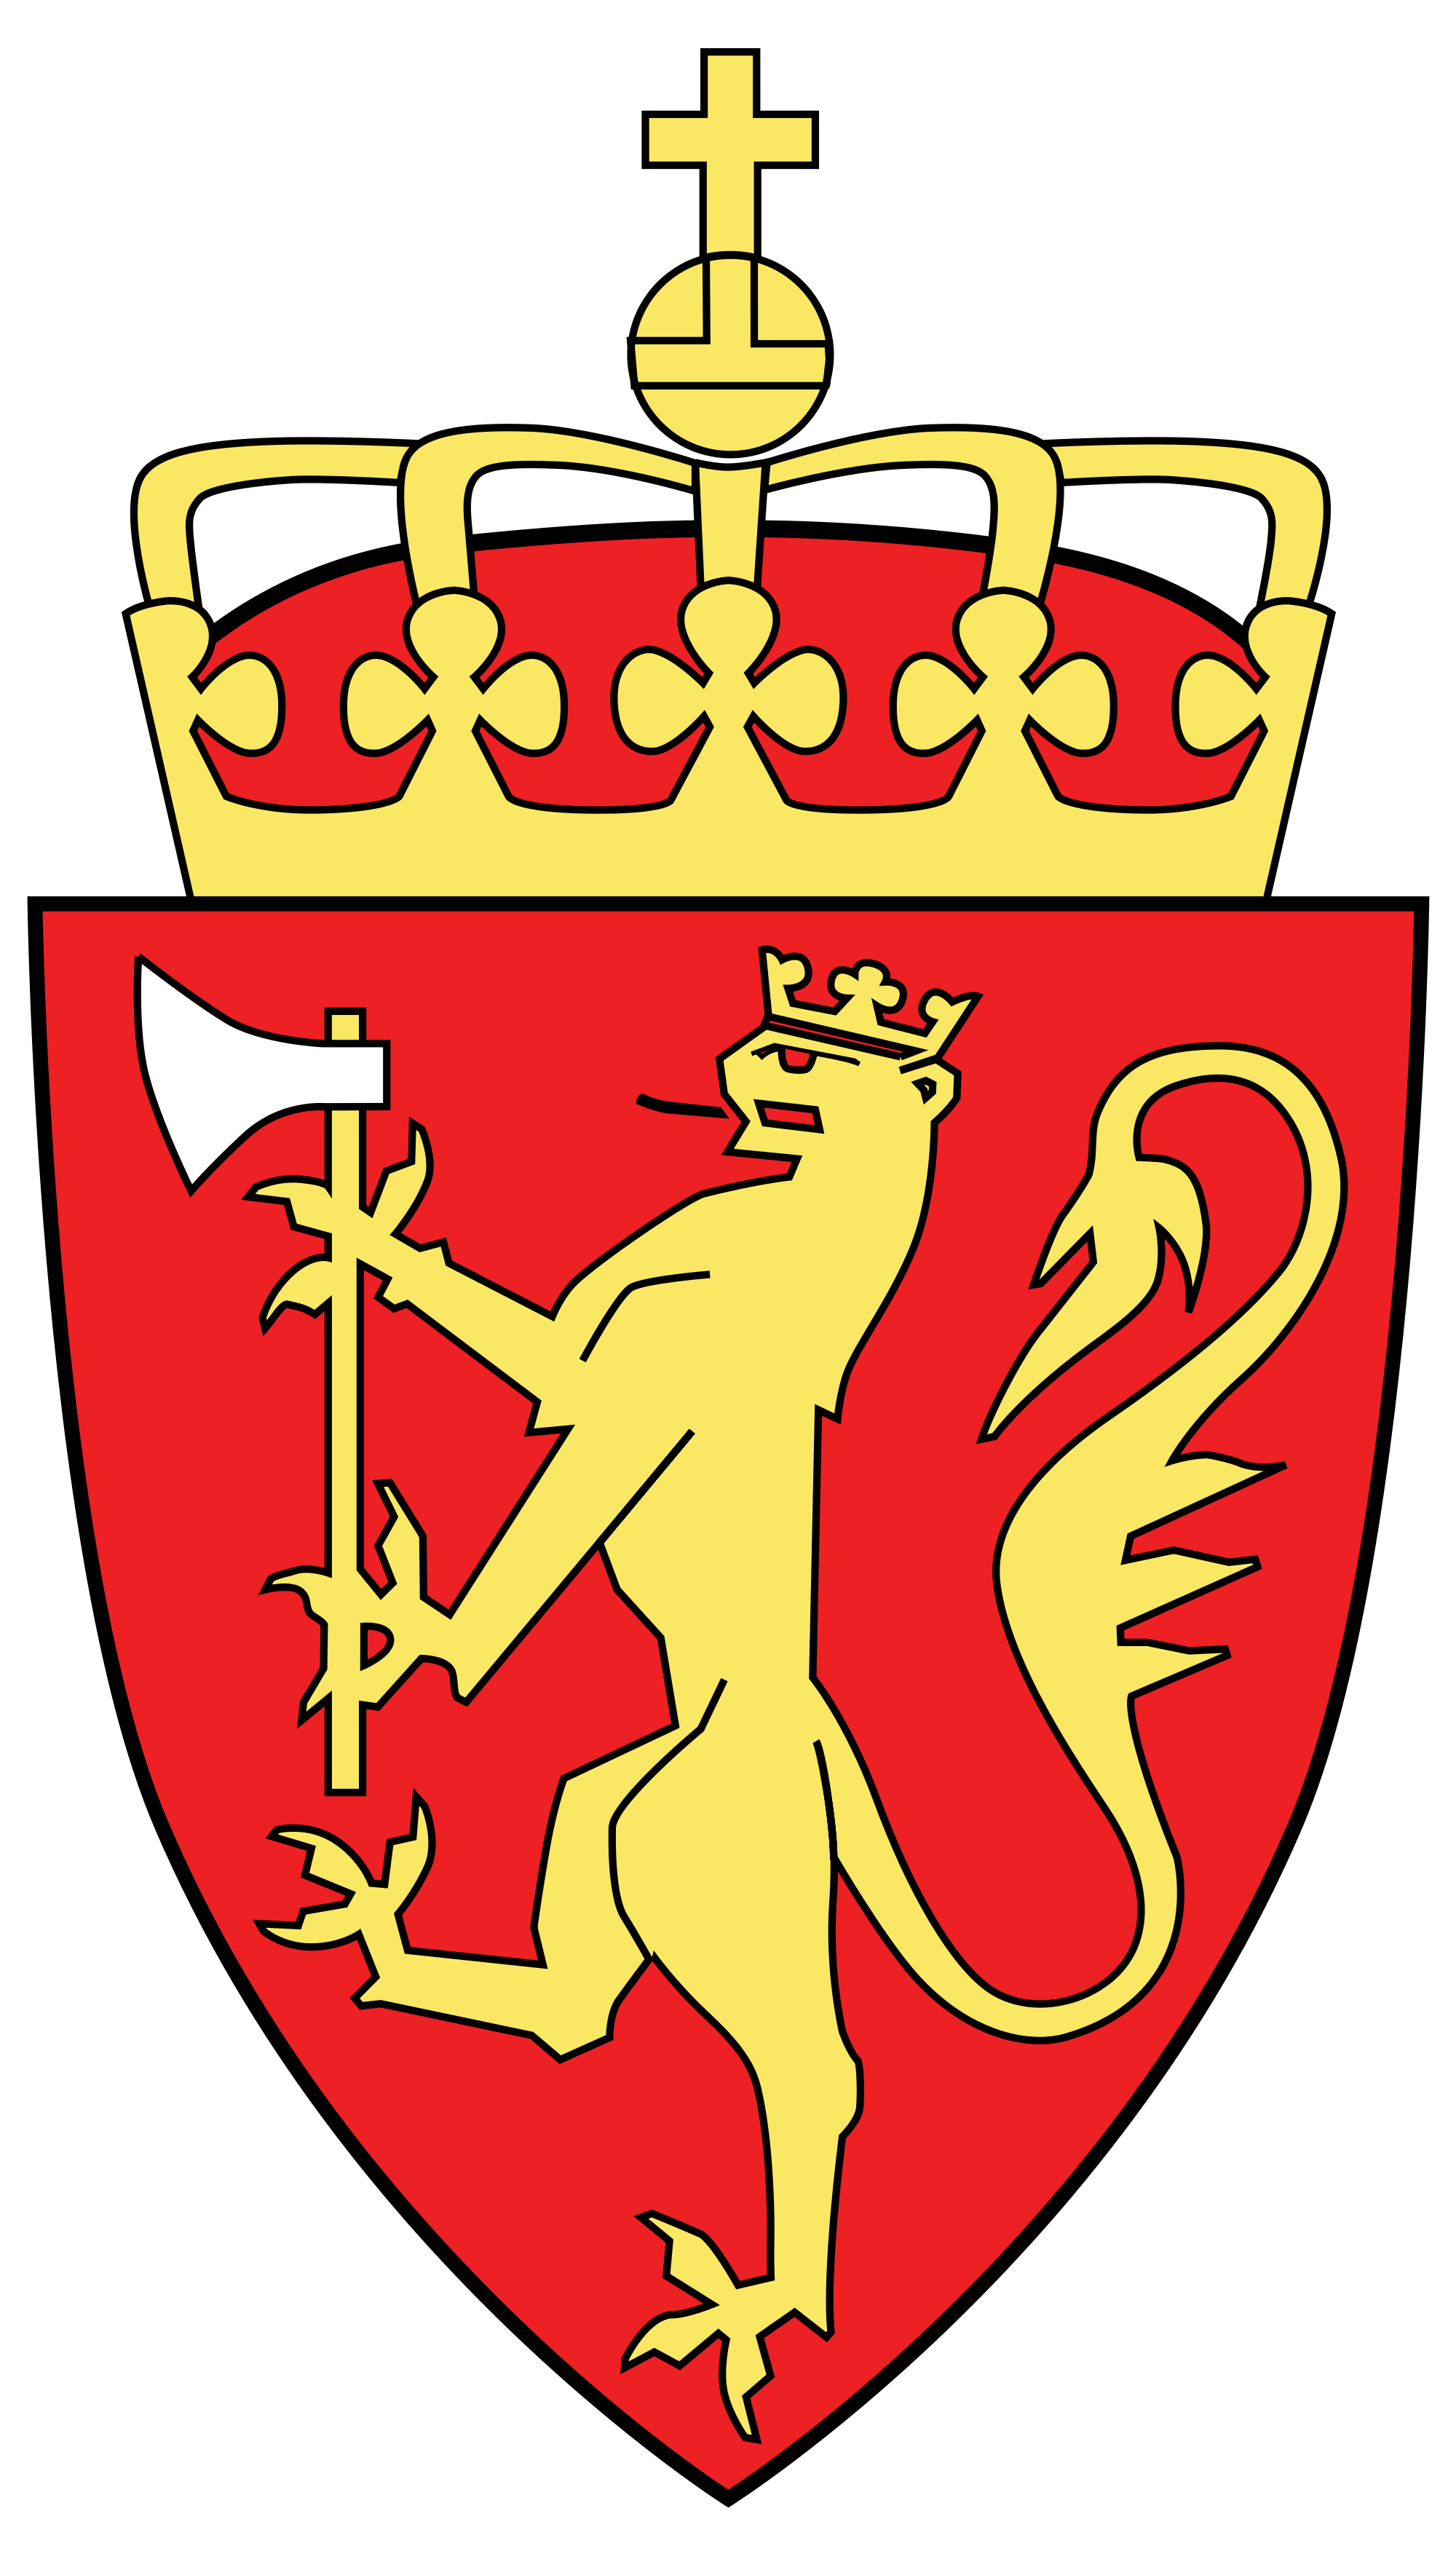 Kingdom Of Norway Sok Pa Google Norway Coat Of Arms Arms